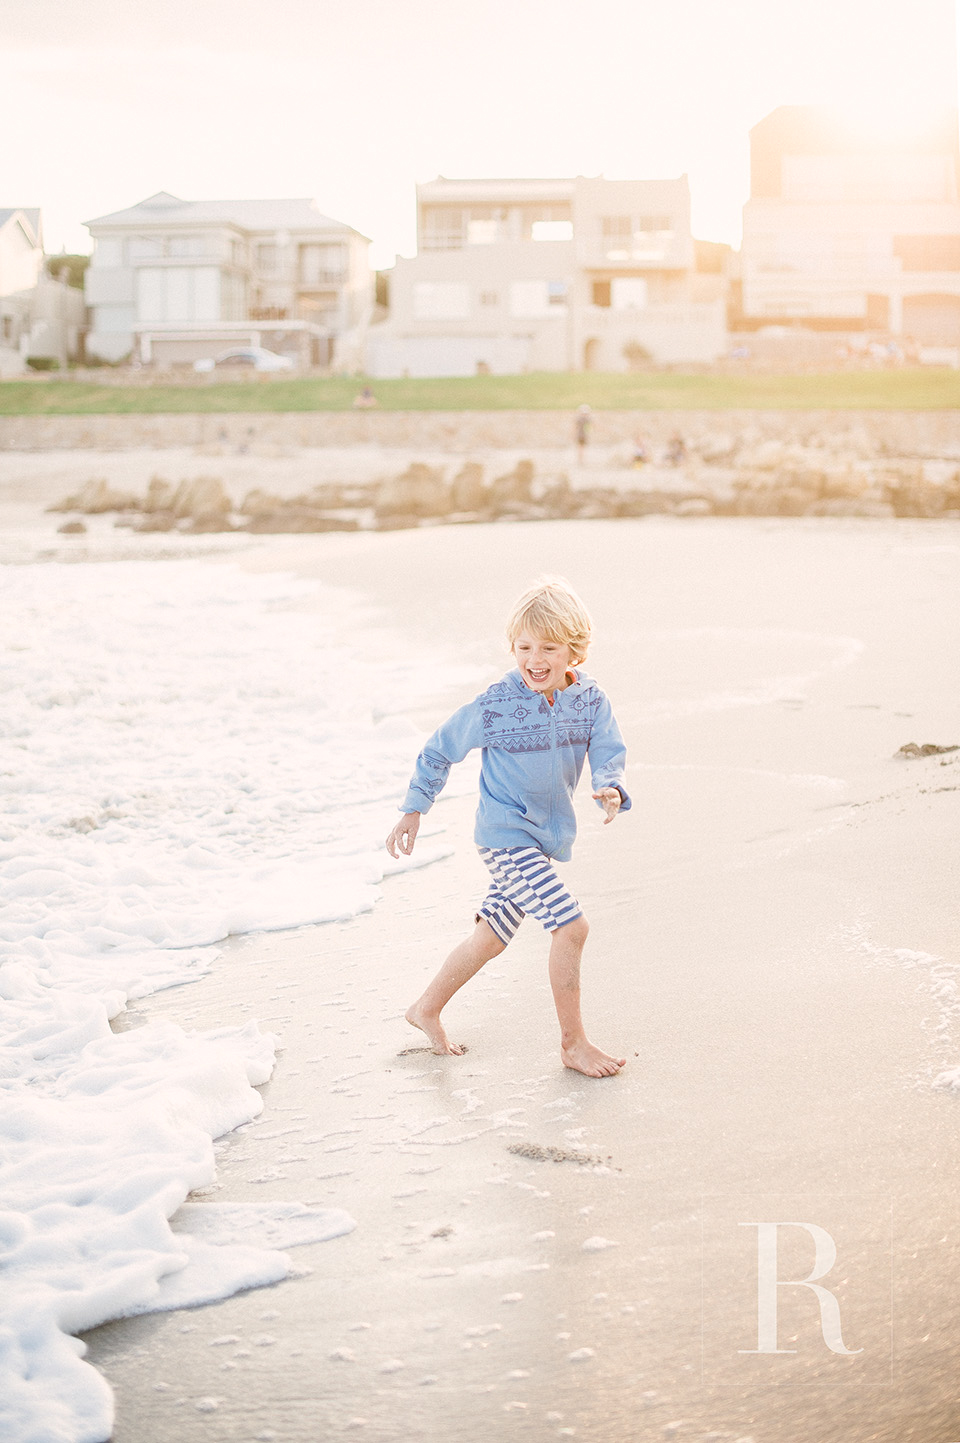 RYAN PARKER PHOTOGRAPHY_HERMANUS_AUGUST 2014-9620.jpg